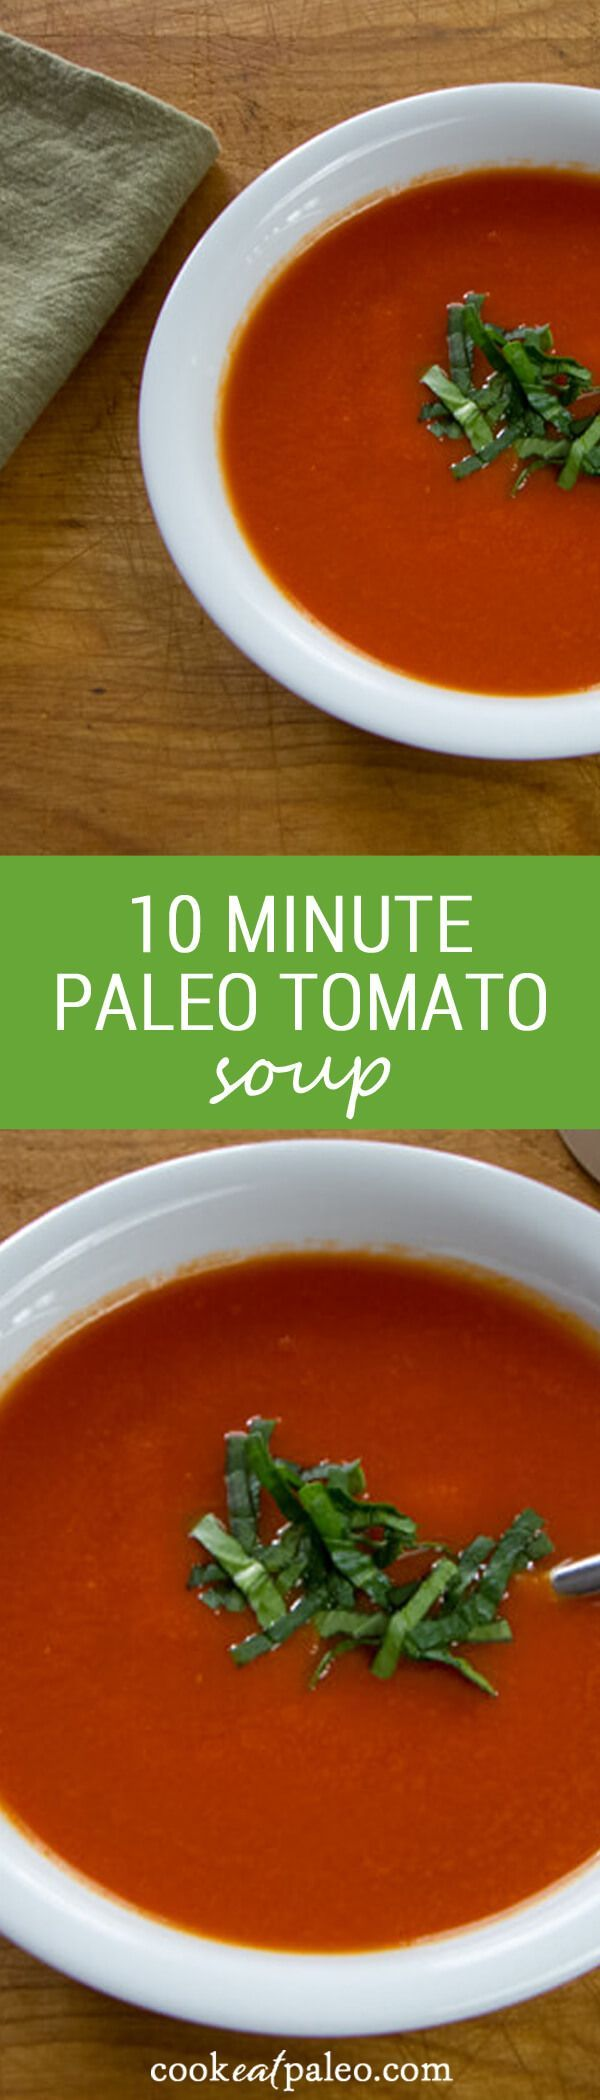 10-Minute Paleo Tomato Soup is a quick and easy dairy-free, paleo tomato soup with intense tomato flavor and a hint of heat and garlic.